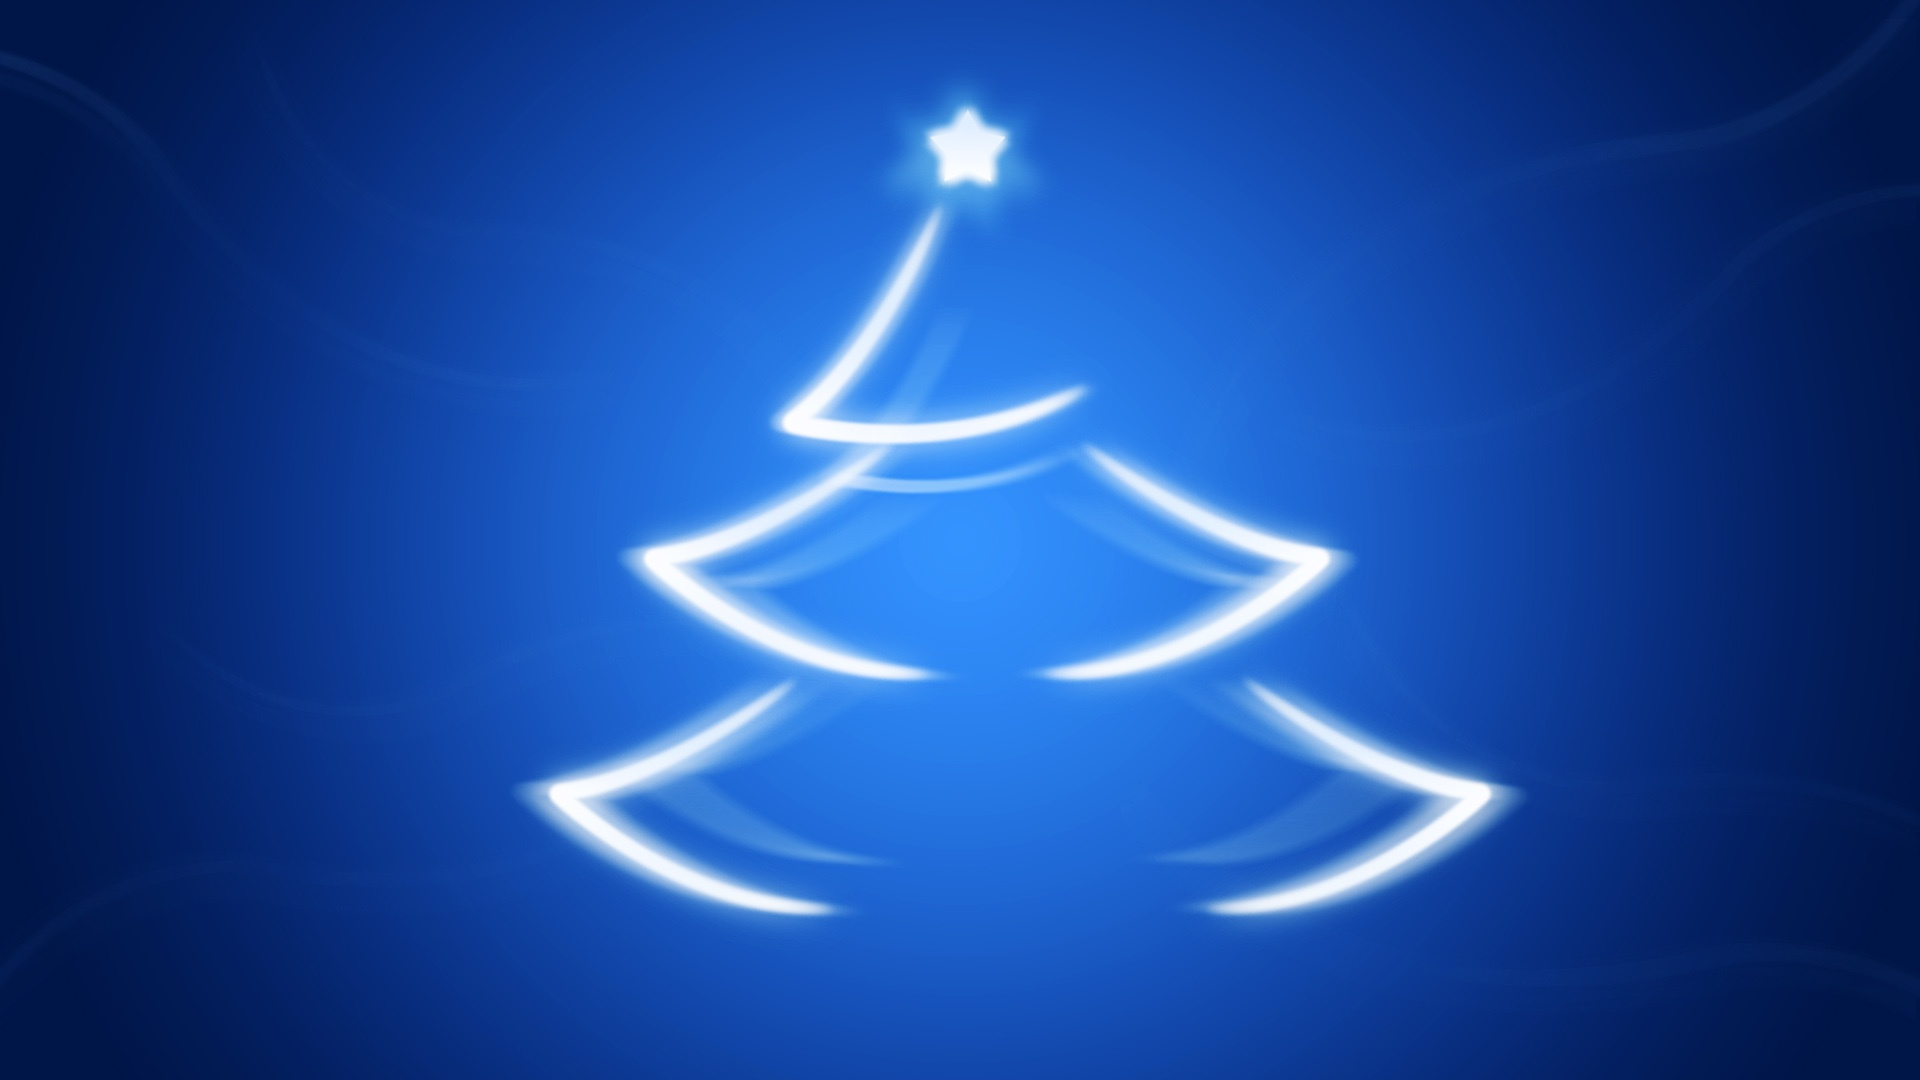 merry christmas wallpapers laptop